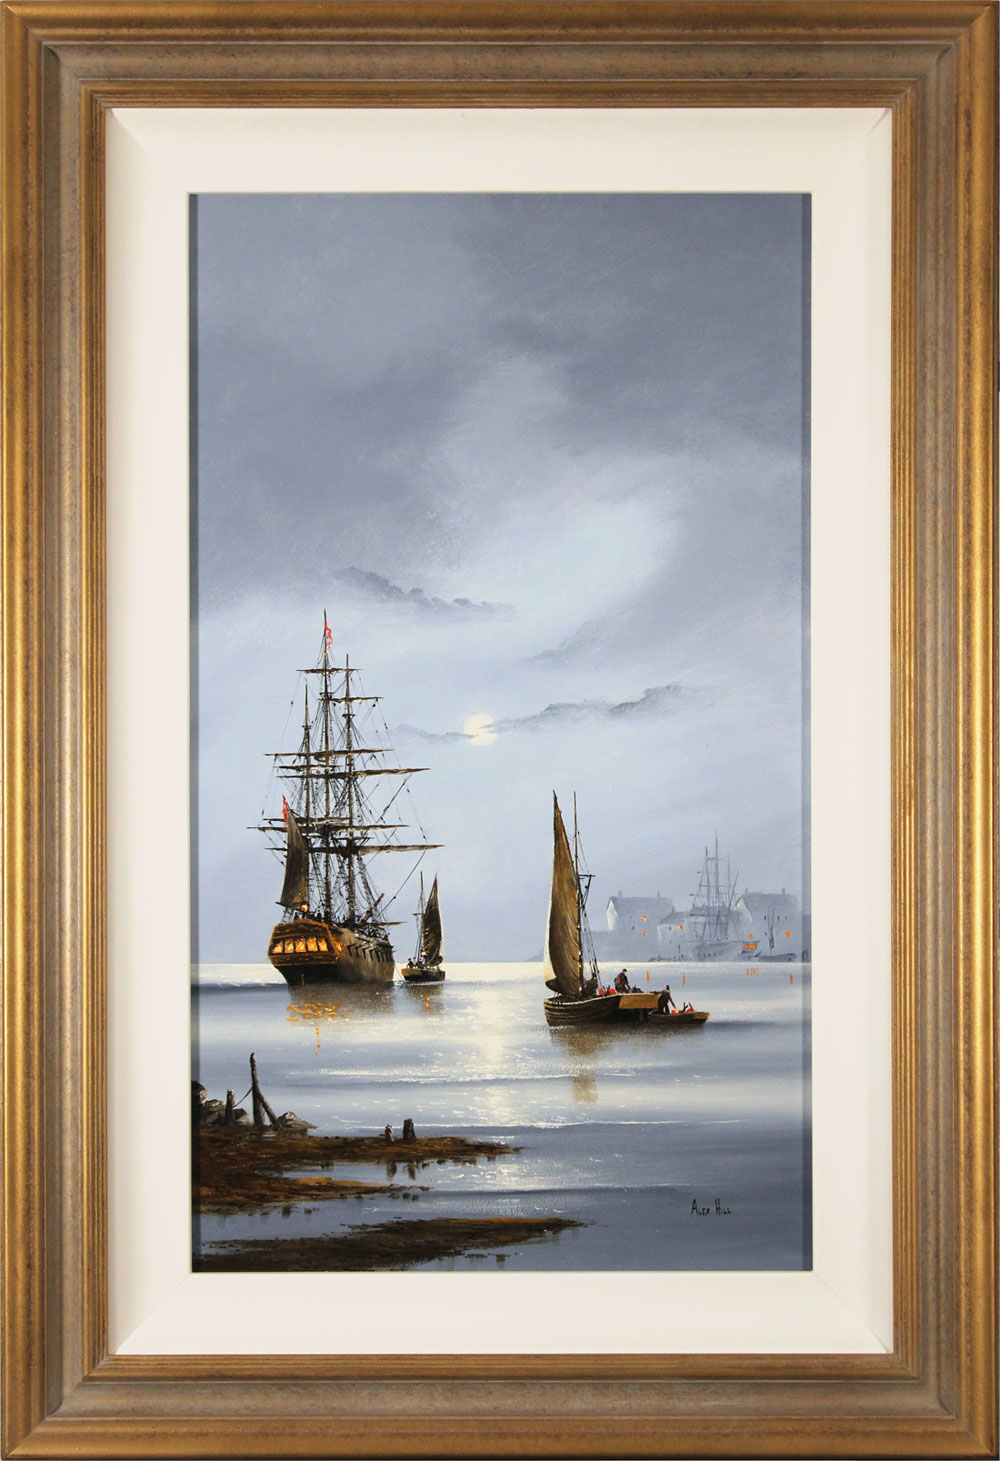 Alex Hill, Original oil painting on panel, Silver Tides Click to enlarge